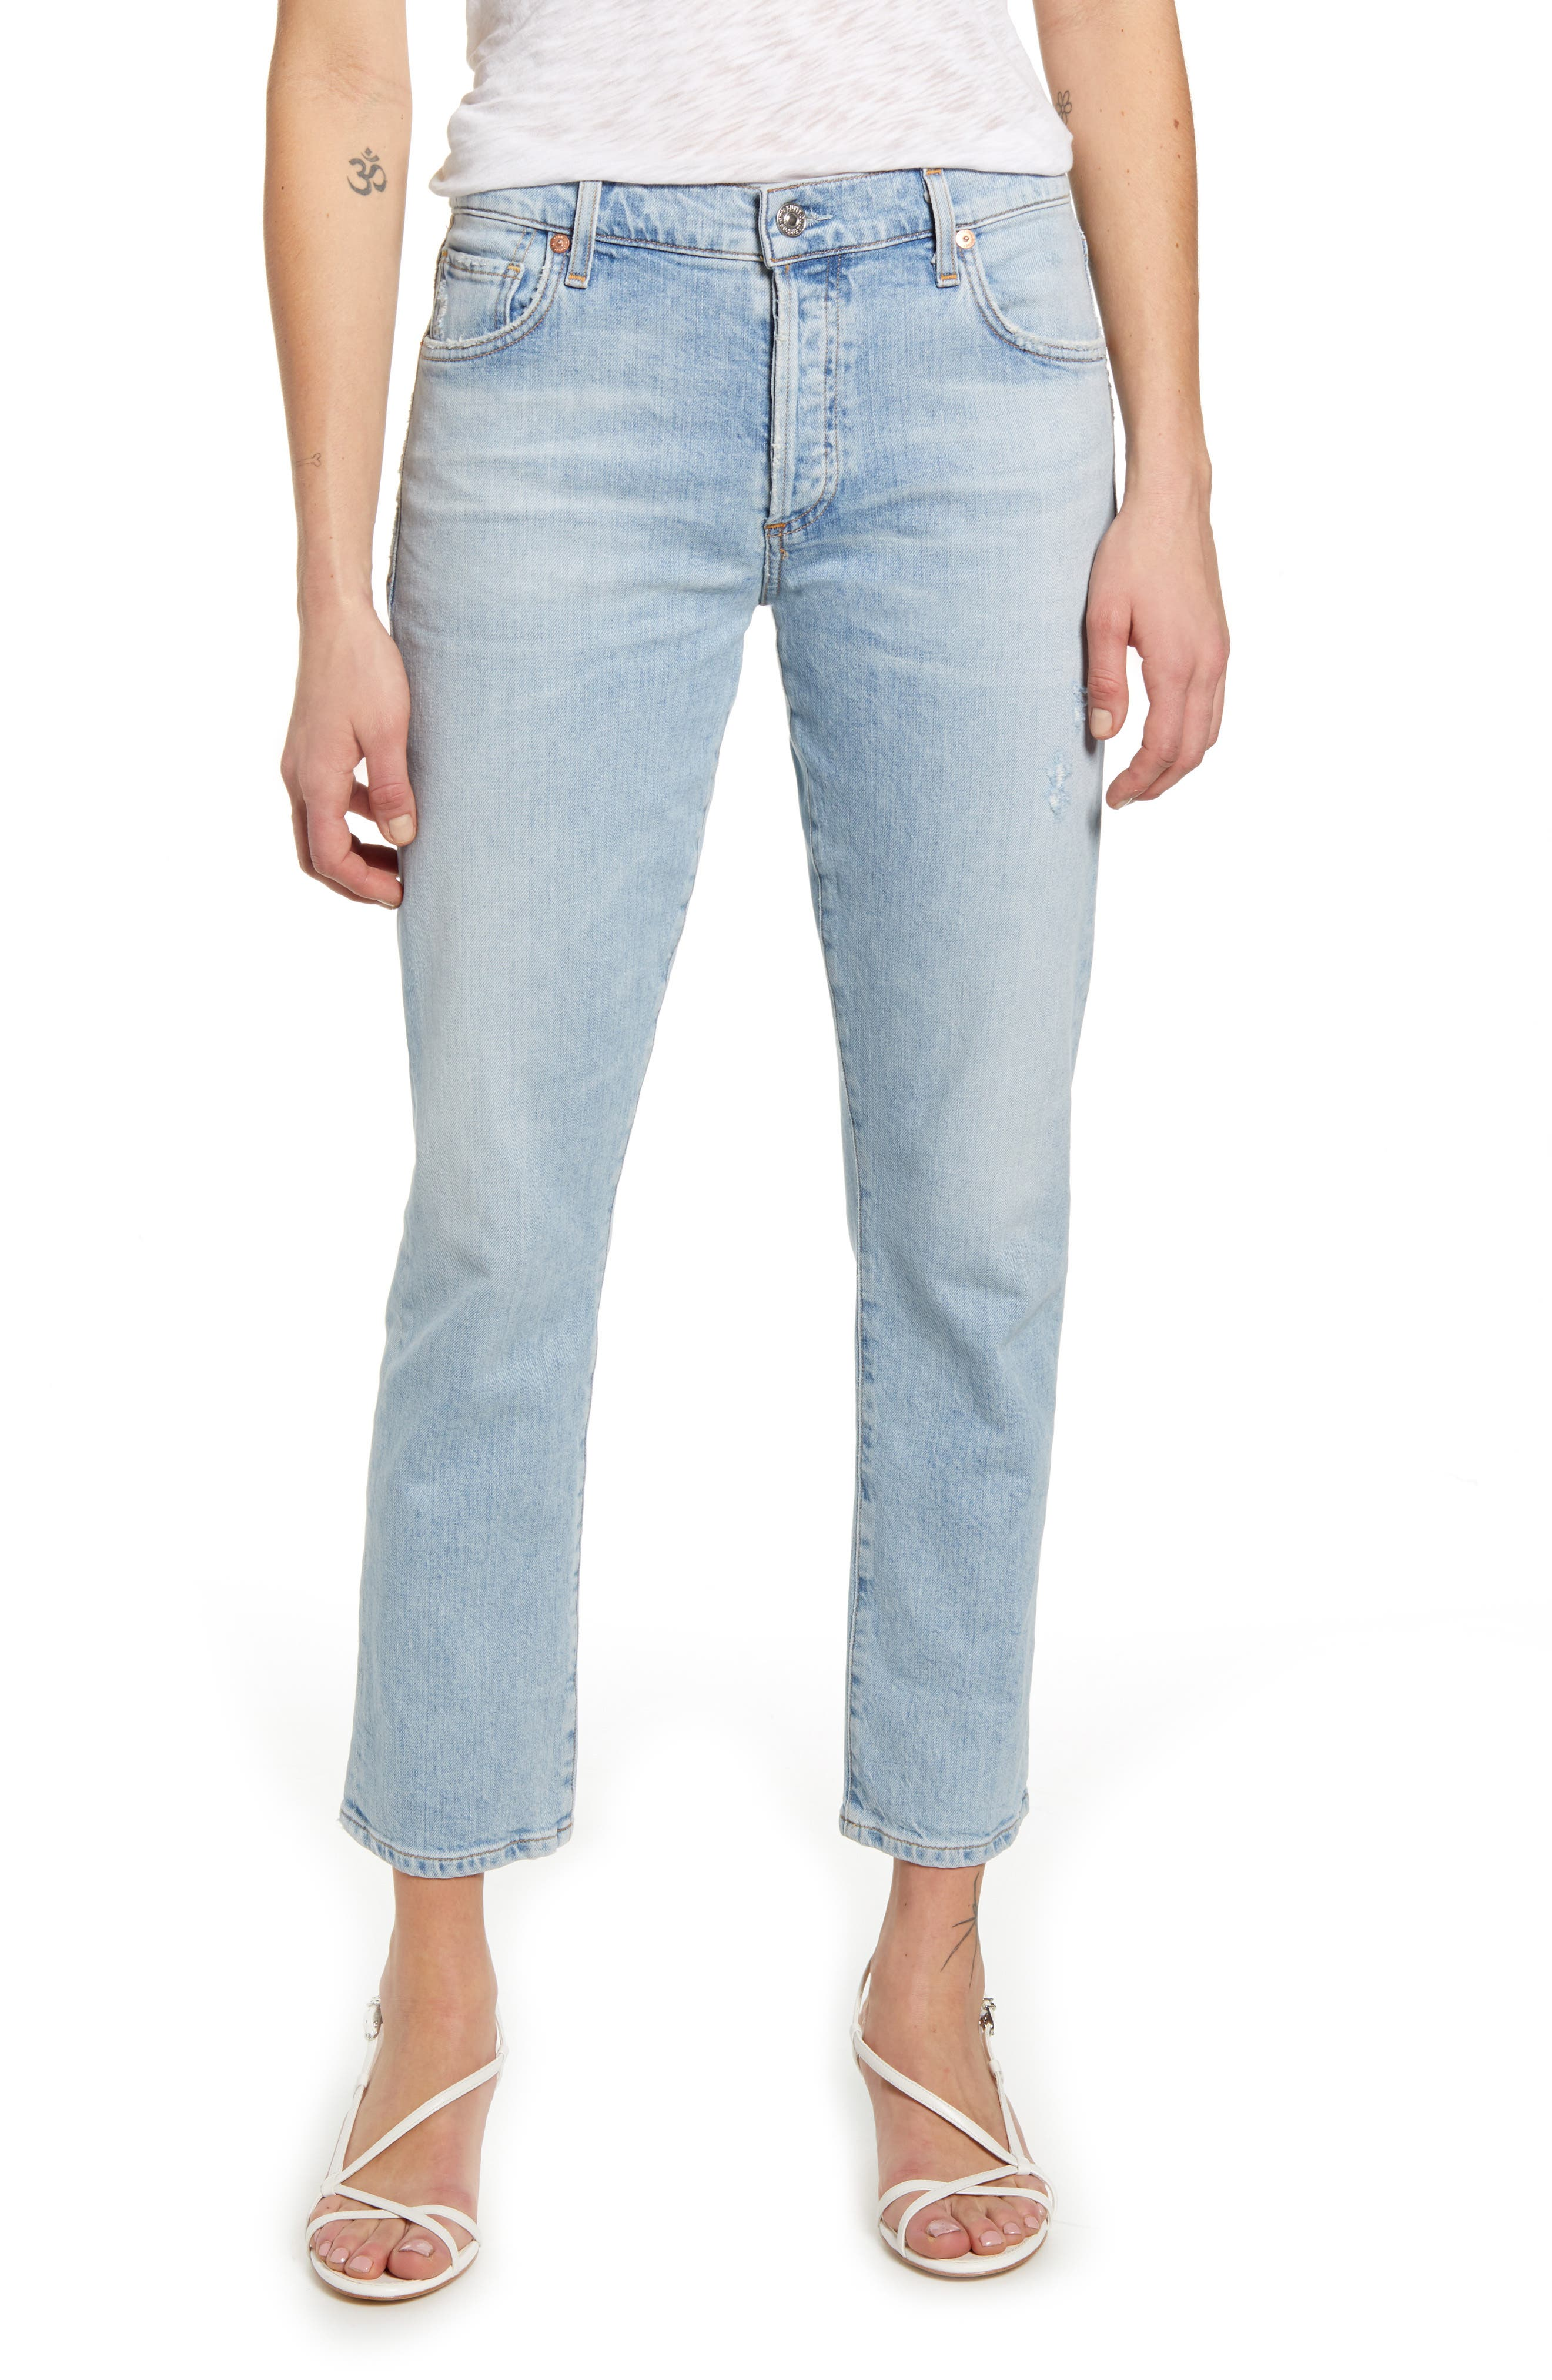 Citizens of Humanity Emerson Slim Boyfriend Jeans (Try Me)   Nordstrom